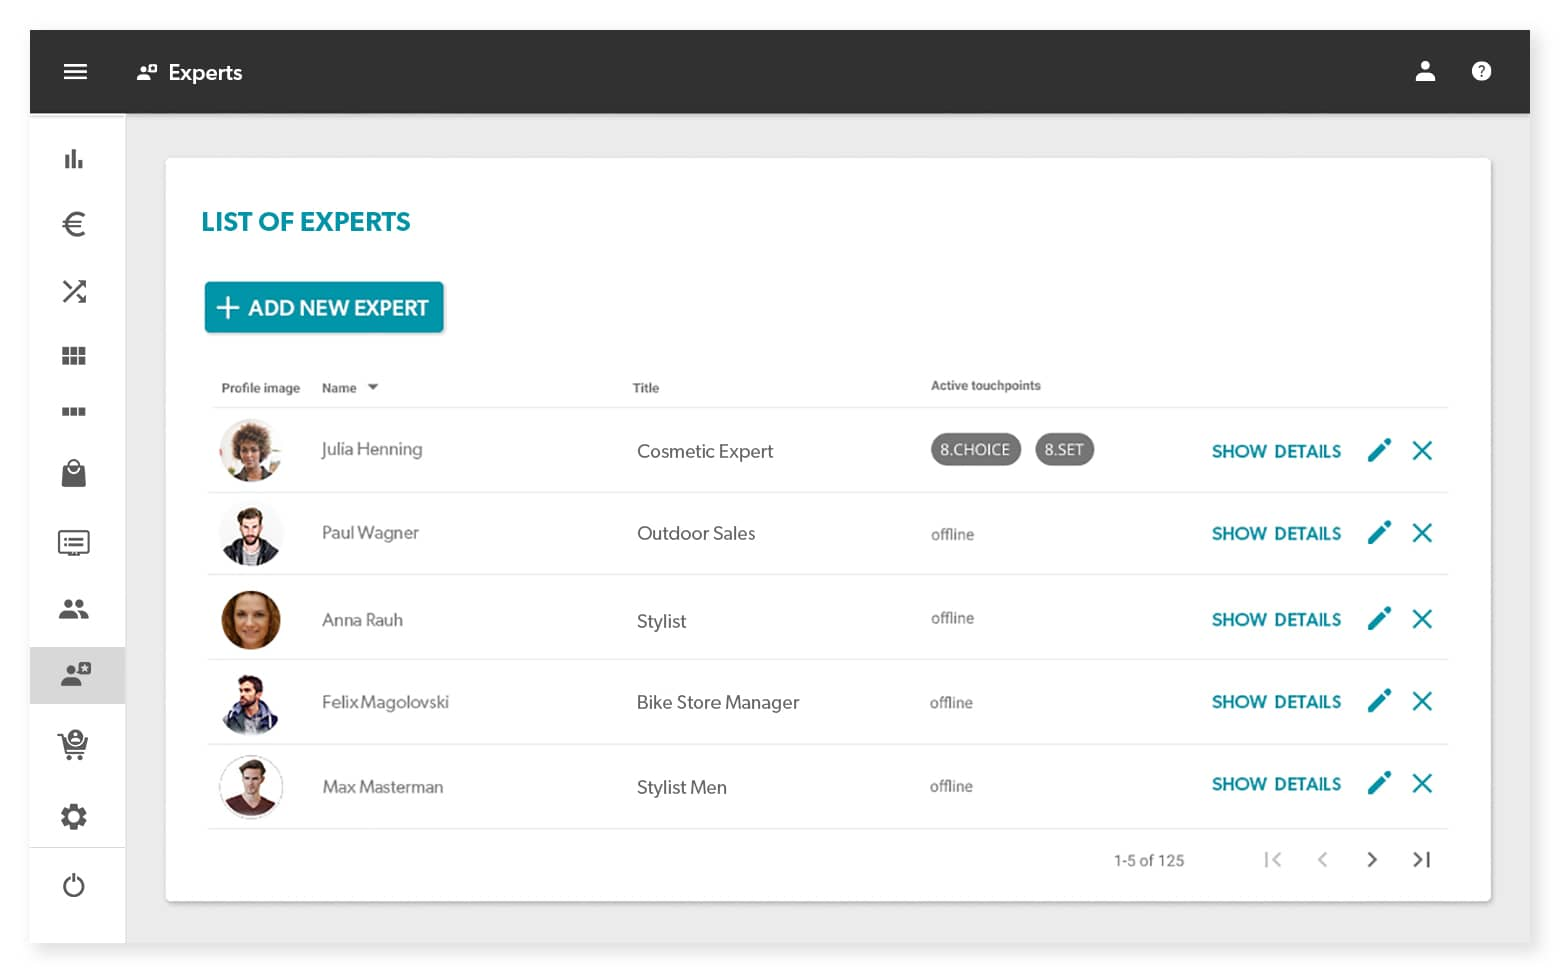 8select MCON List of Experts